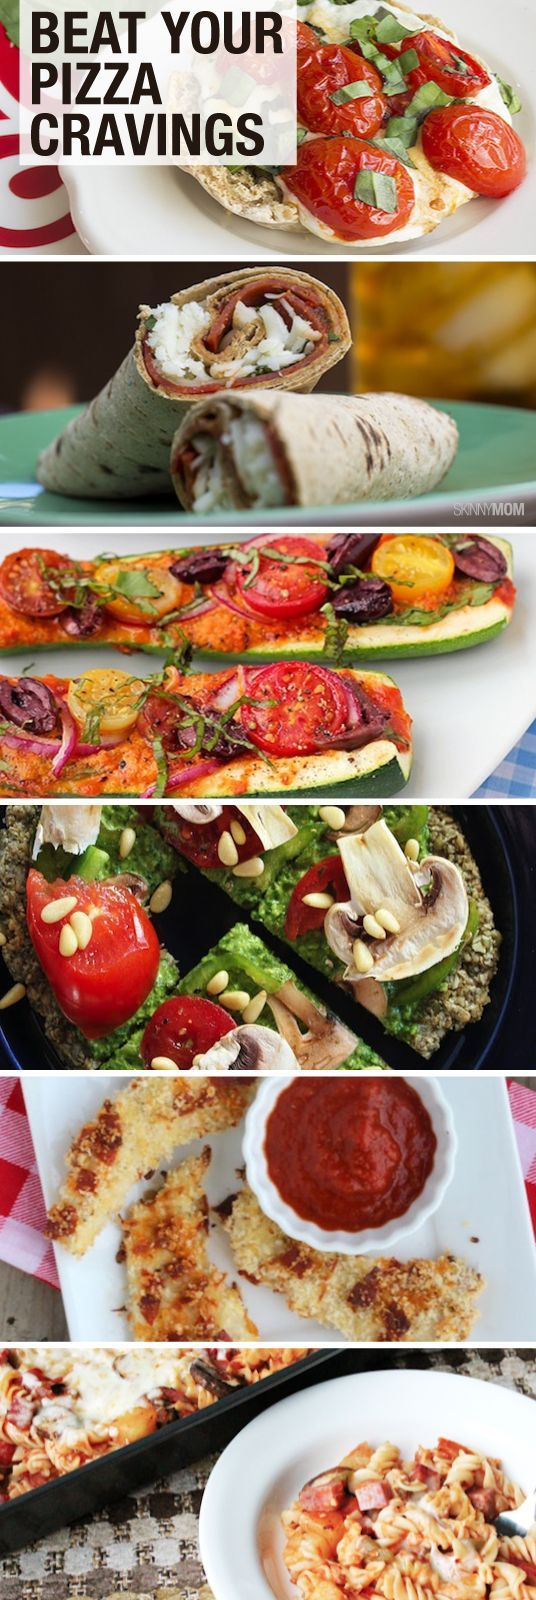 If you're a pizza lover, we've created some healthier options just for you!